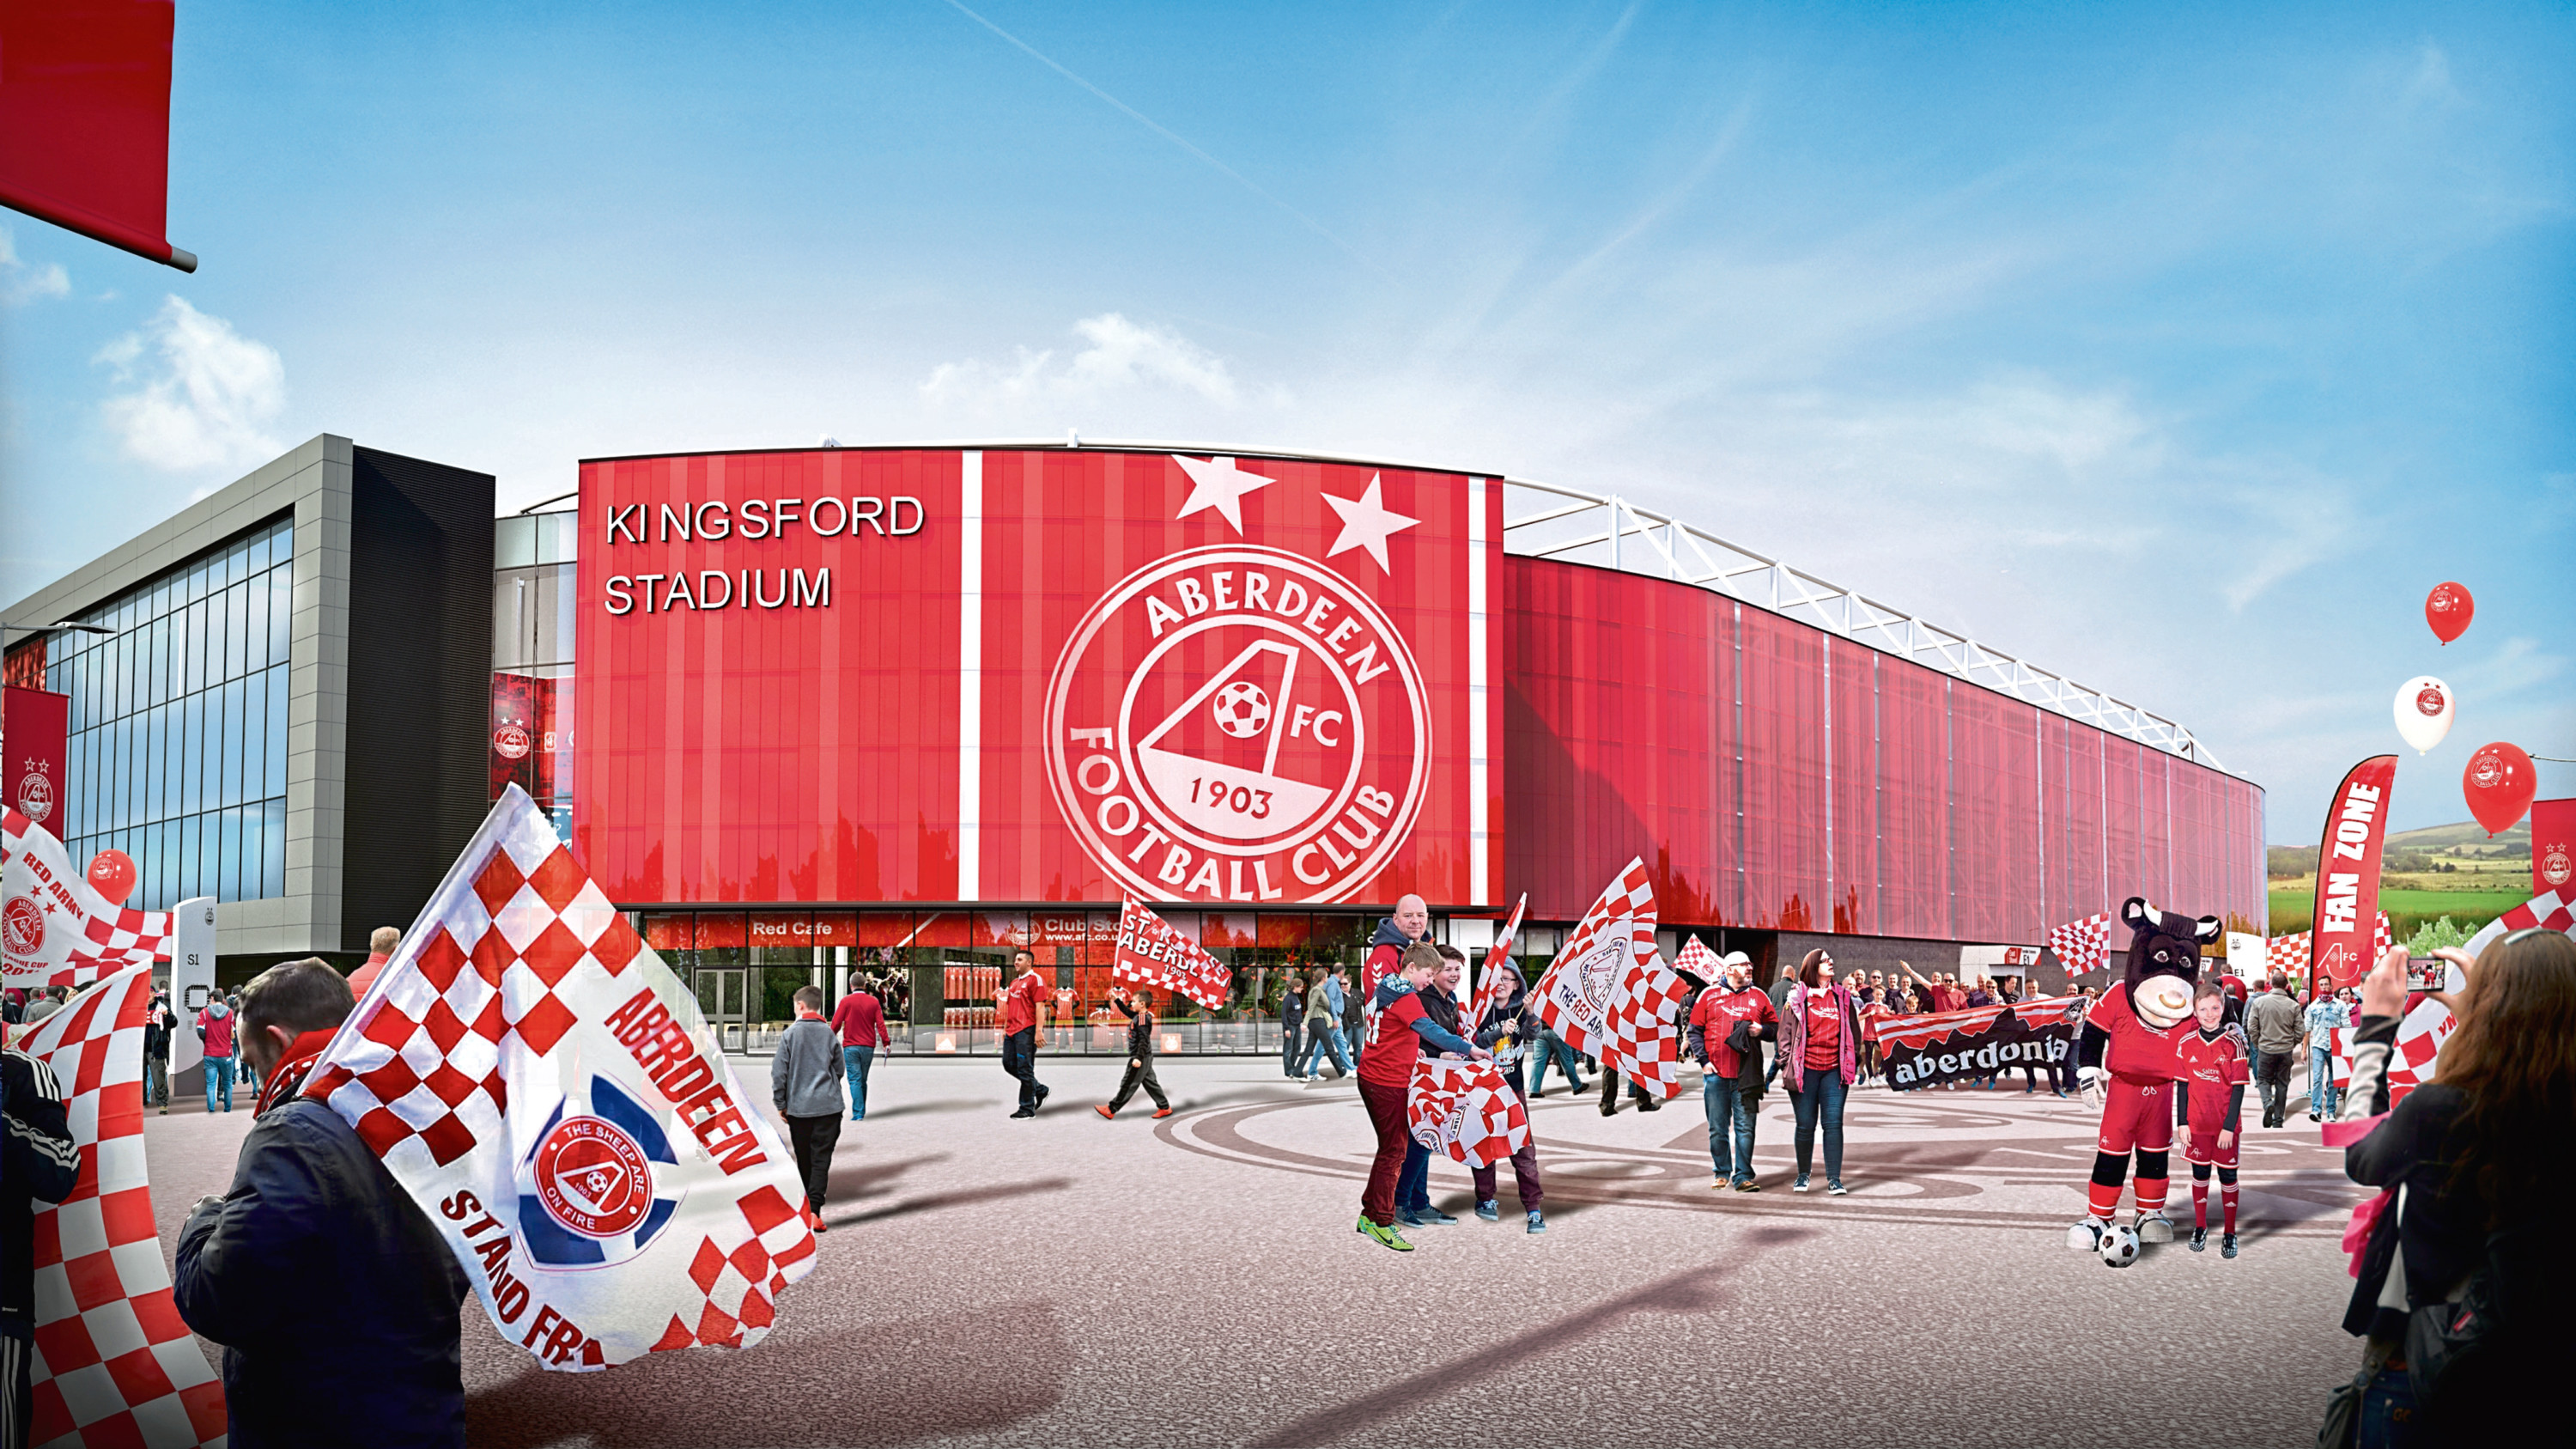 An artist's impression of the new Kingsford stadium